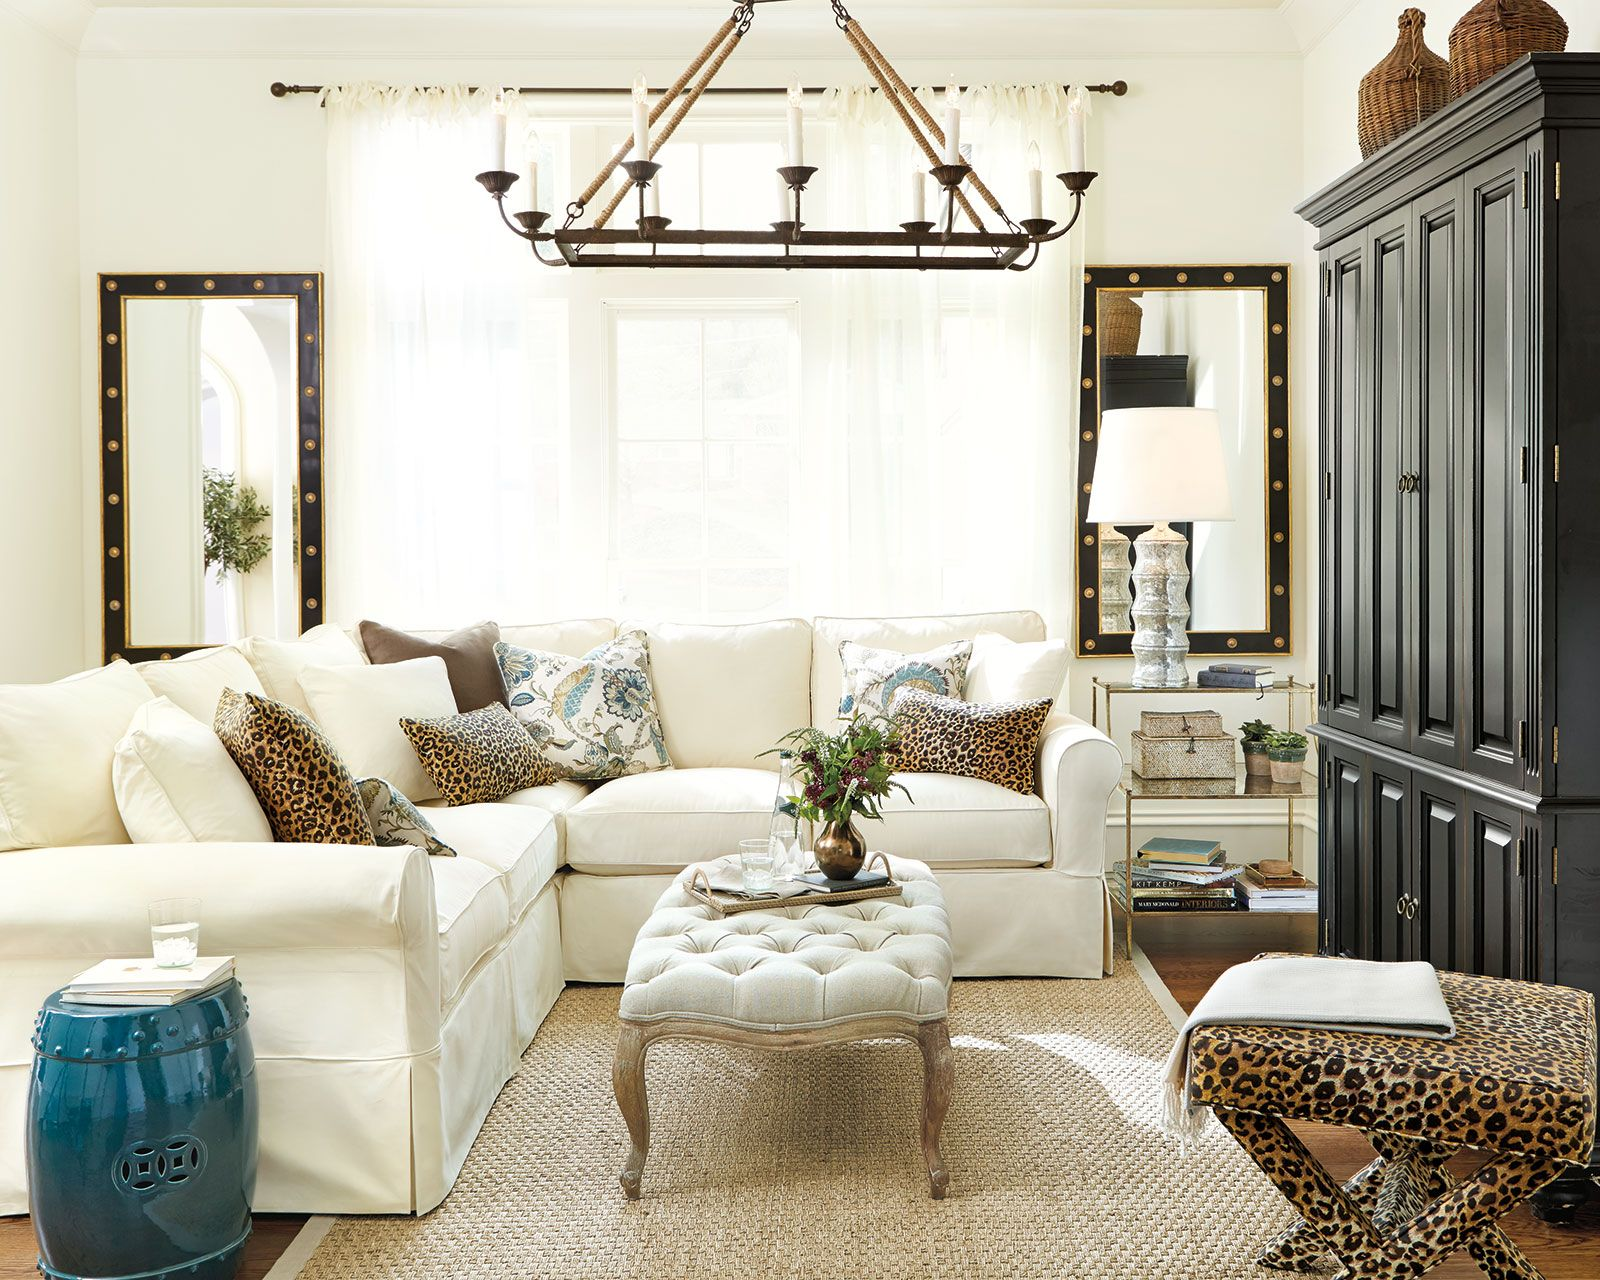 Guide to Choosing Throw Pillows | Pillows, Living rooms and Throw ...